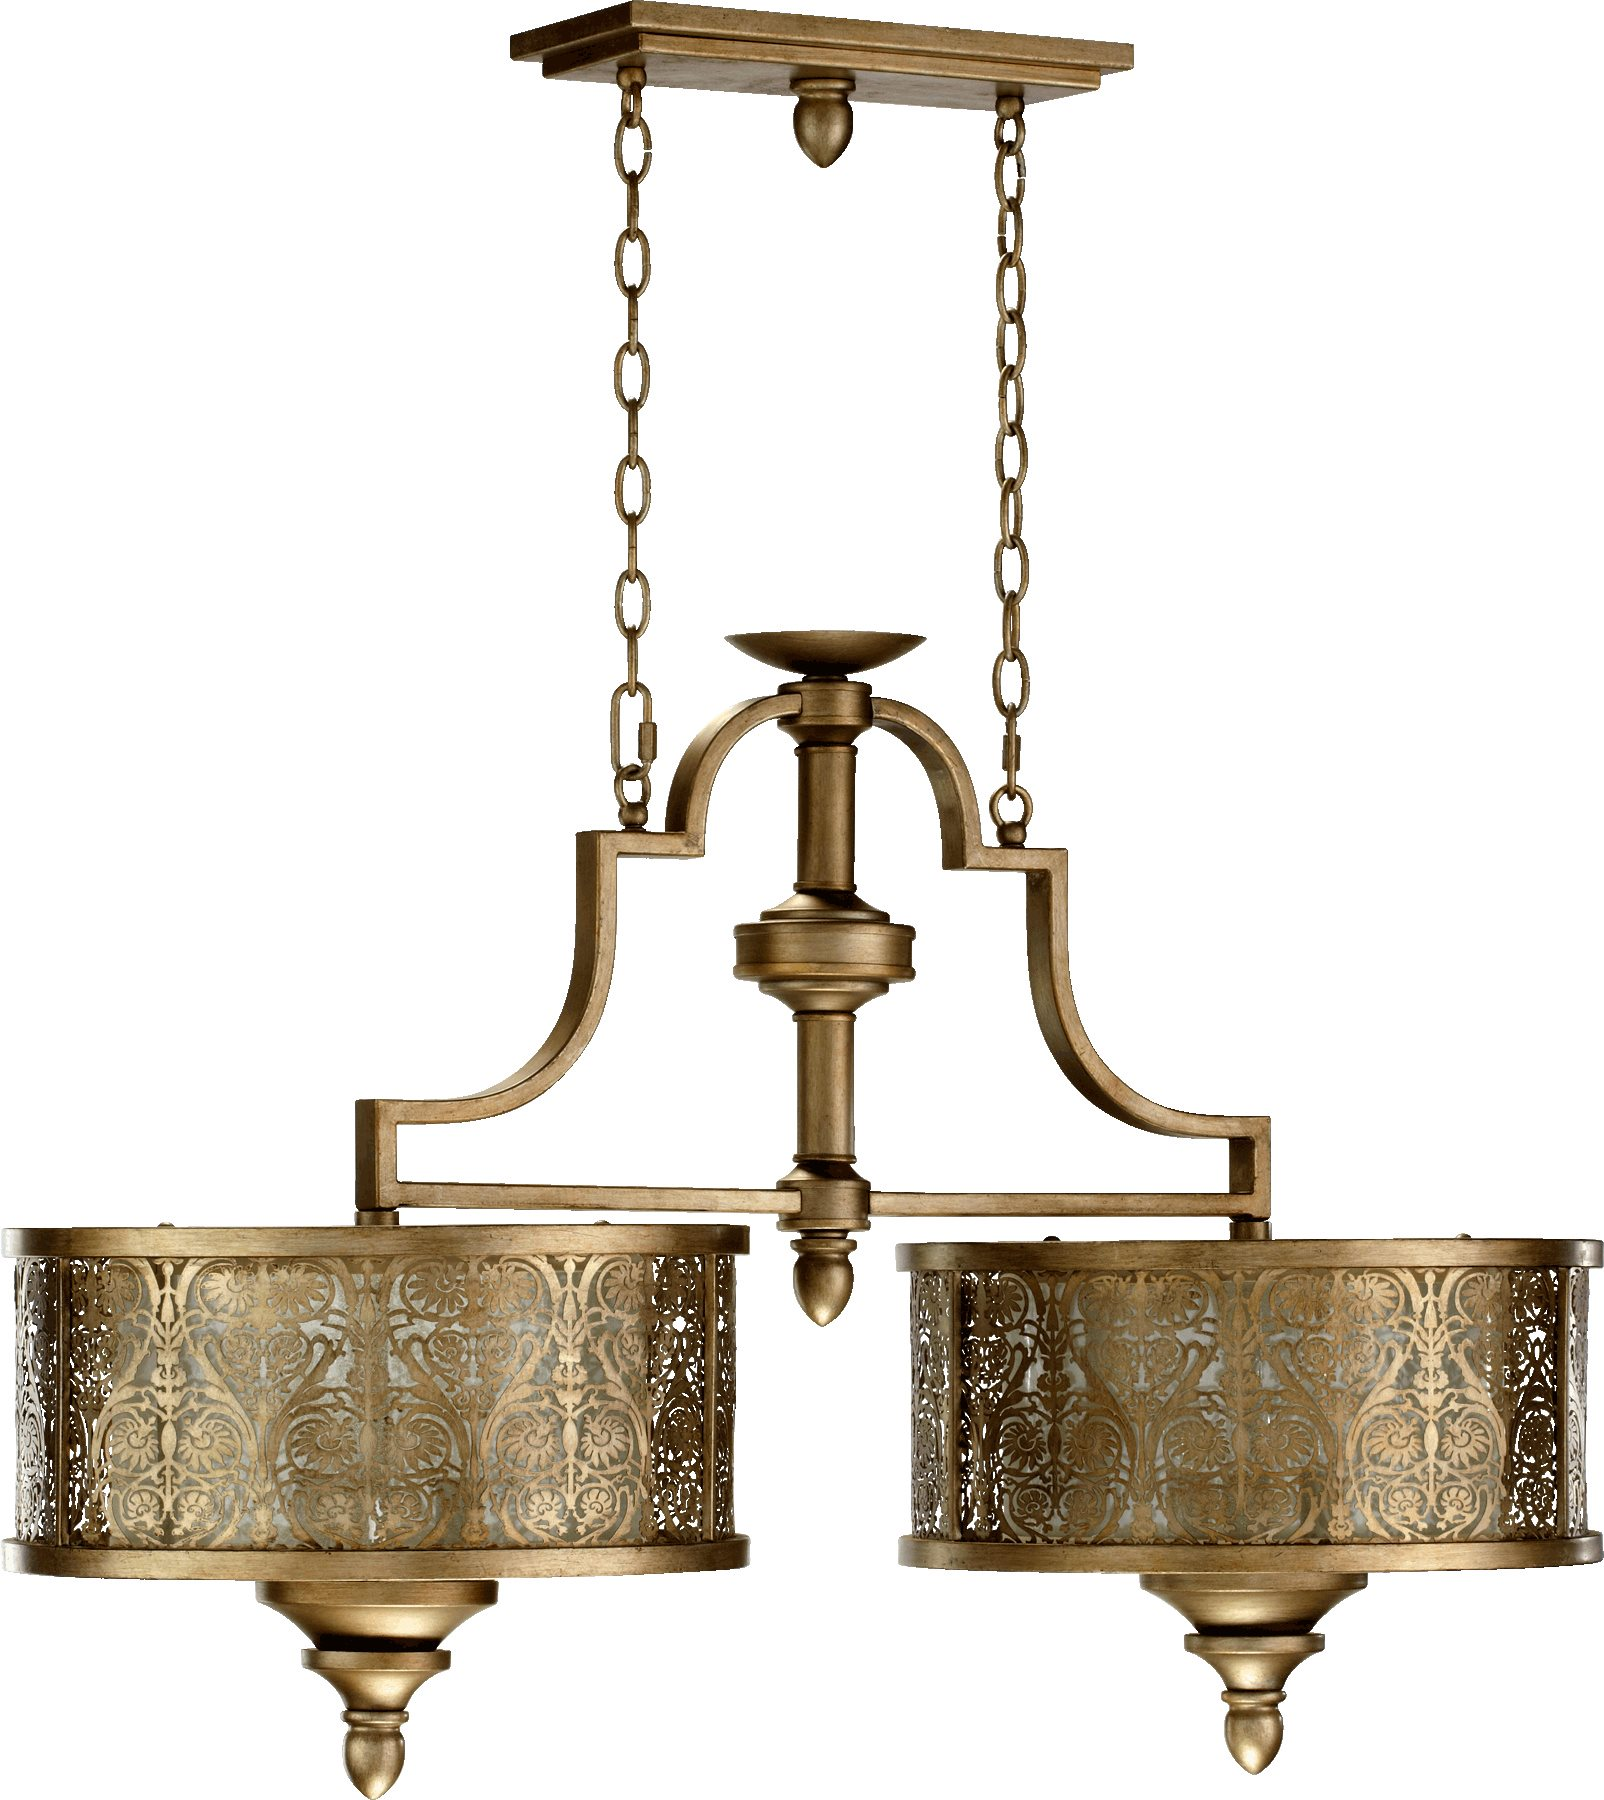 Quorum Lighting 6597-6-18 French Damask Traditional